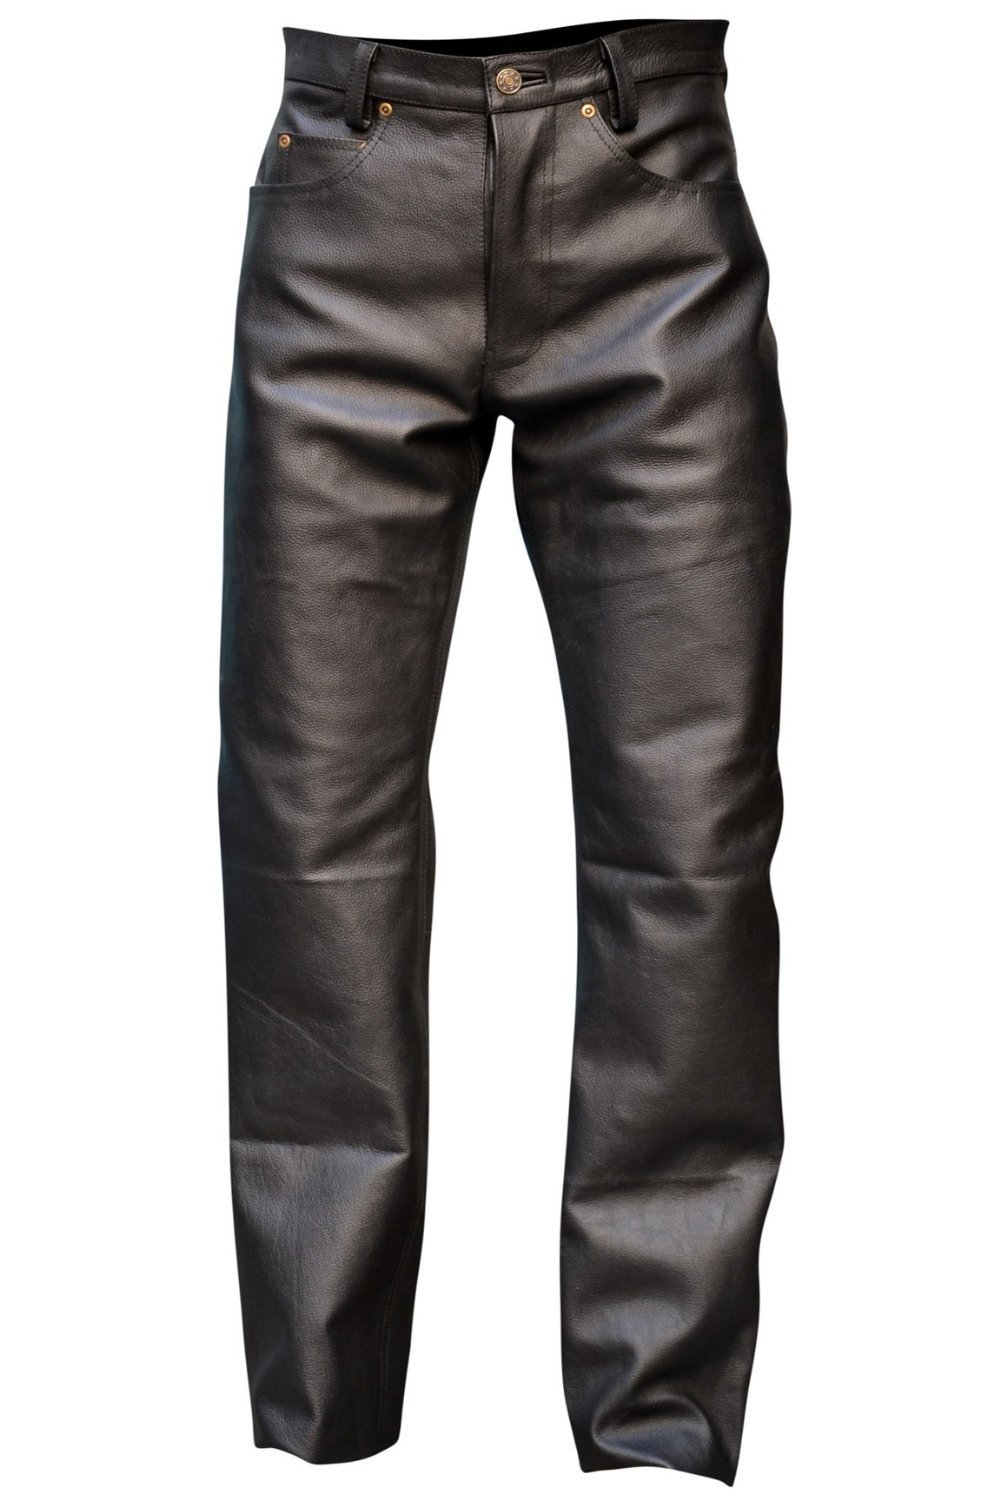 Mens Genuine Leather Pant 5 Pockets Jeans Style Button Fly Model (28 Inches Waist)